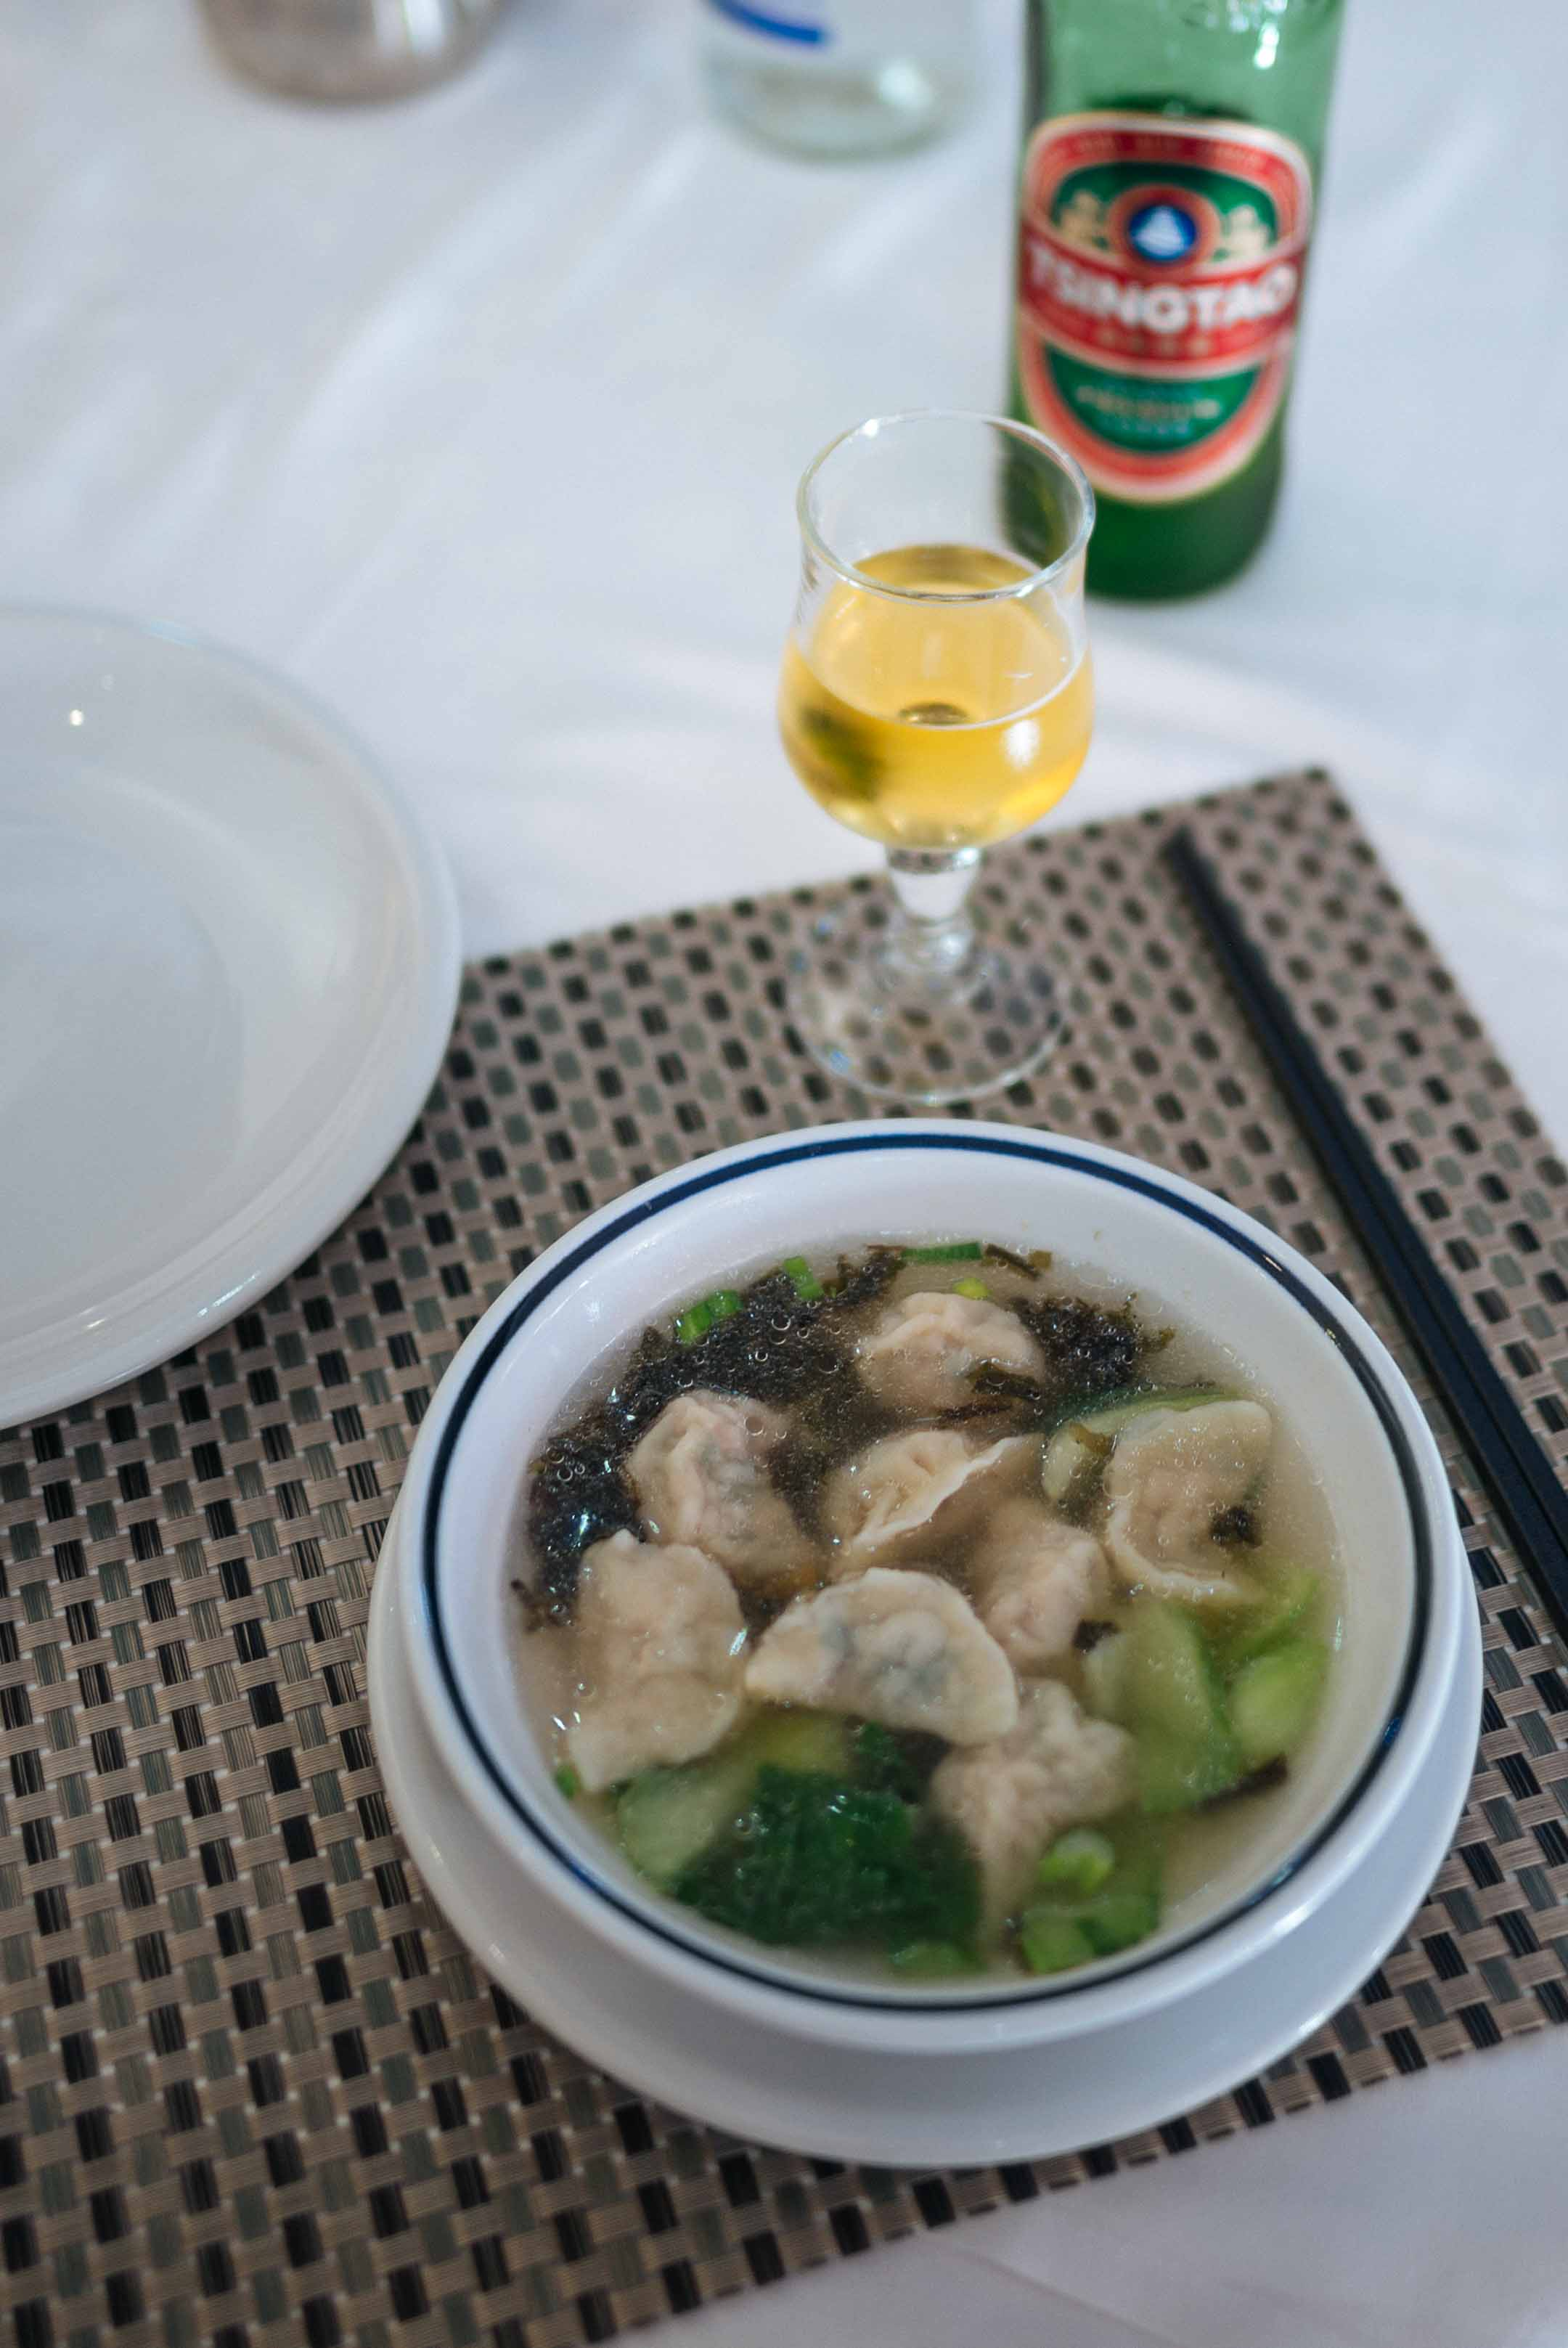 We found the best restaurant in Torino Italy for Chinese food with delicious wonton soup.